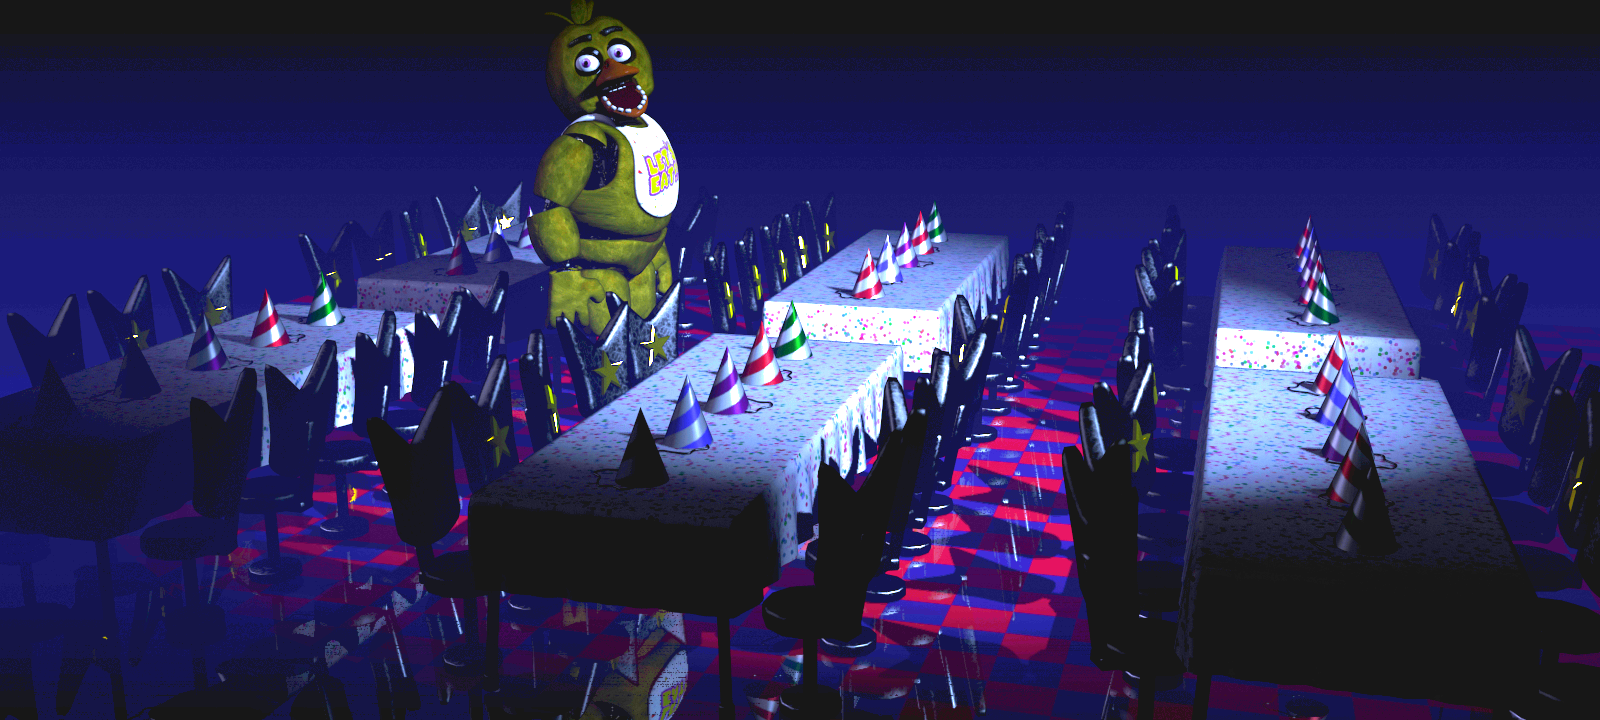 Five Nights at Freddy's 2 - Withered Animatronics [Improved version]